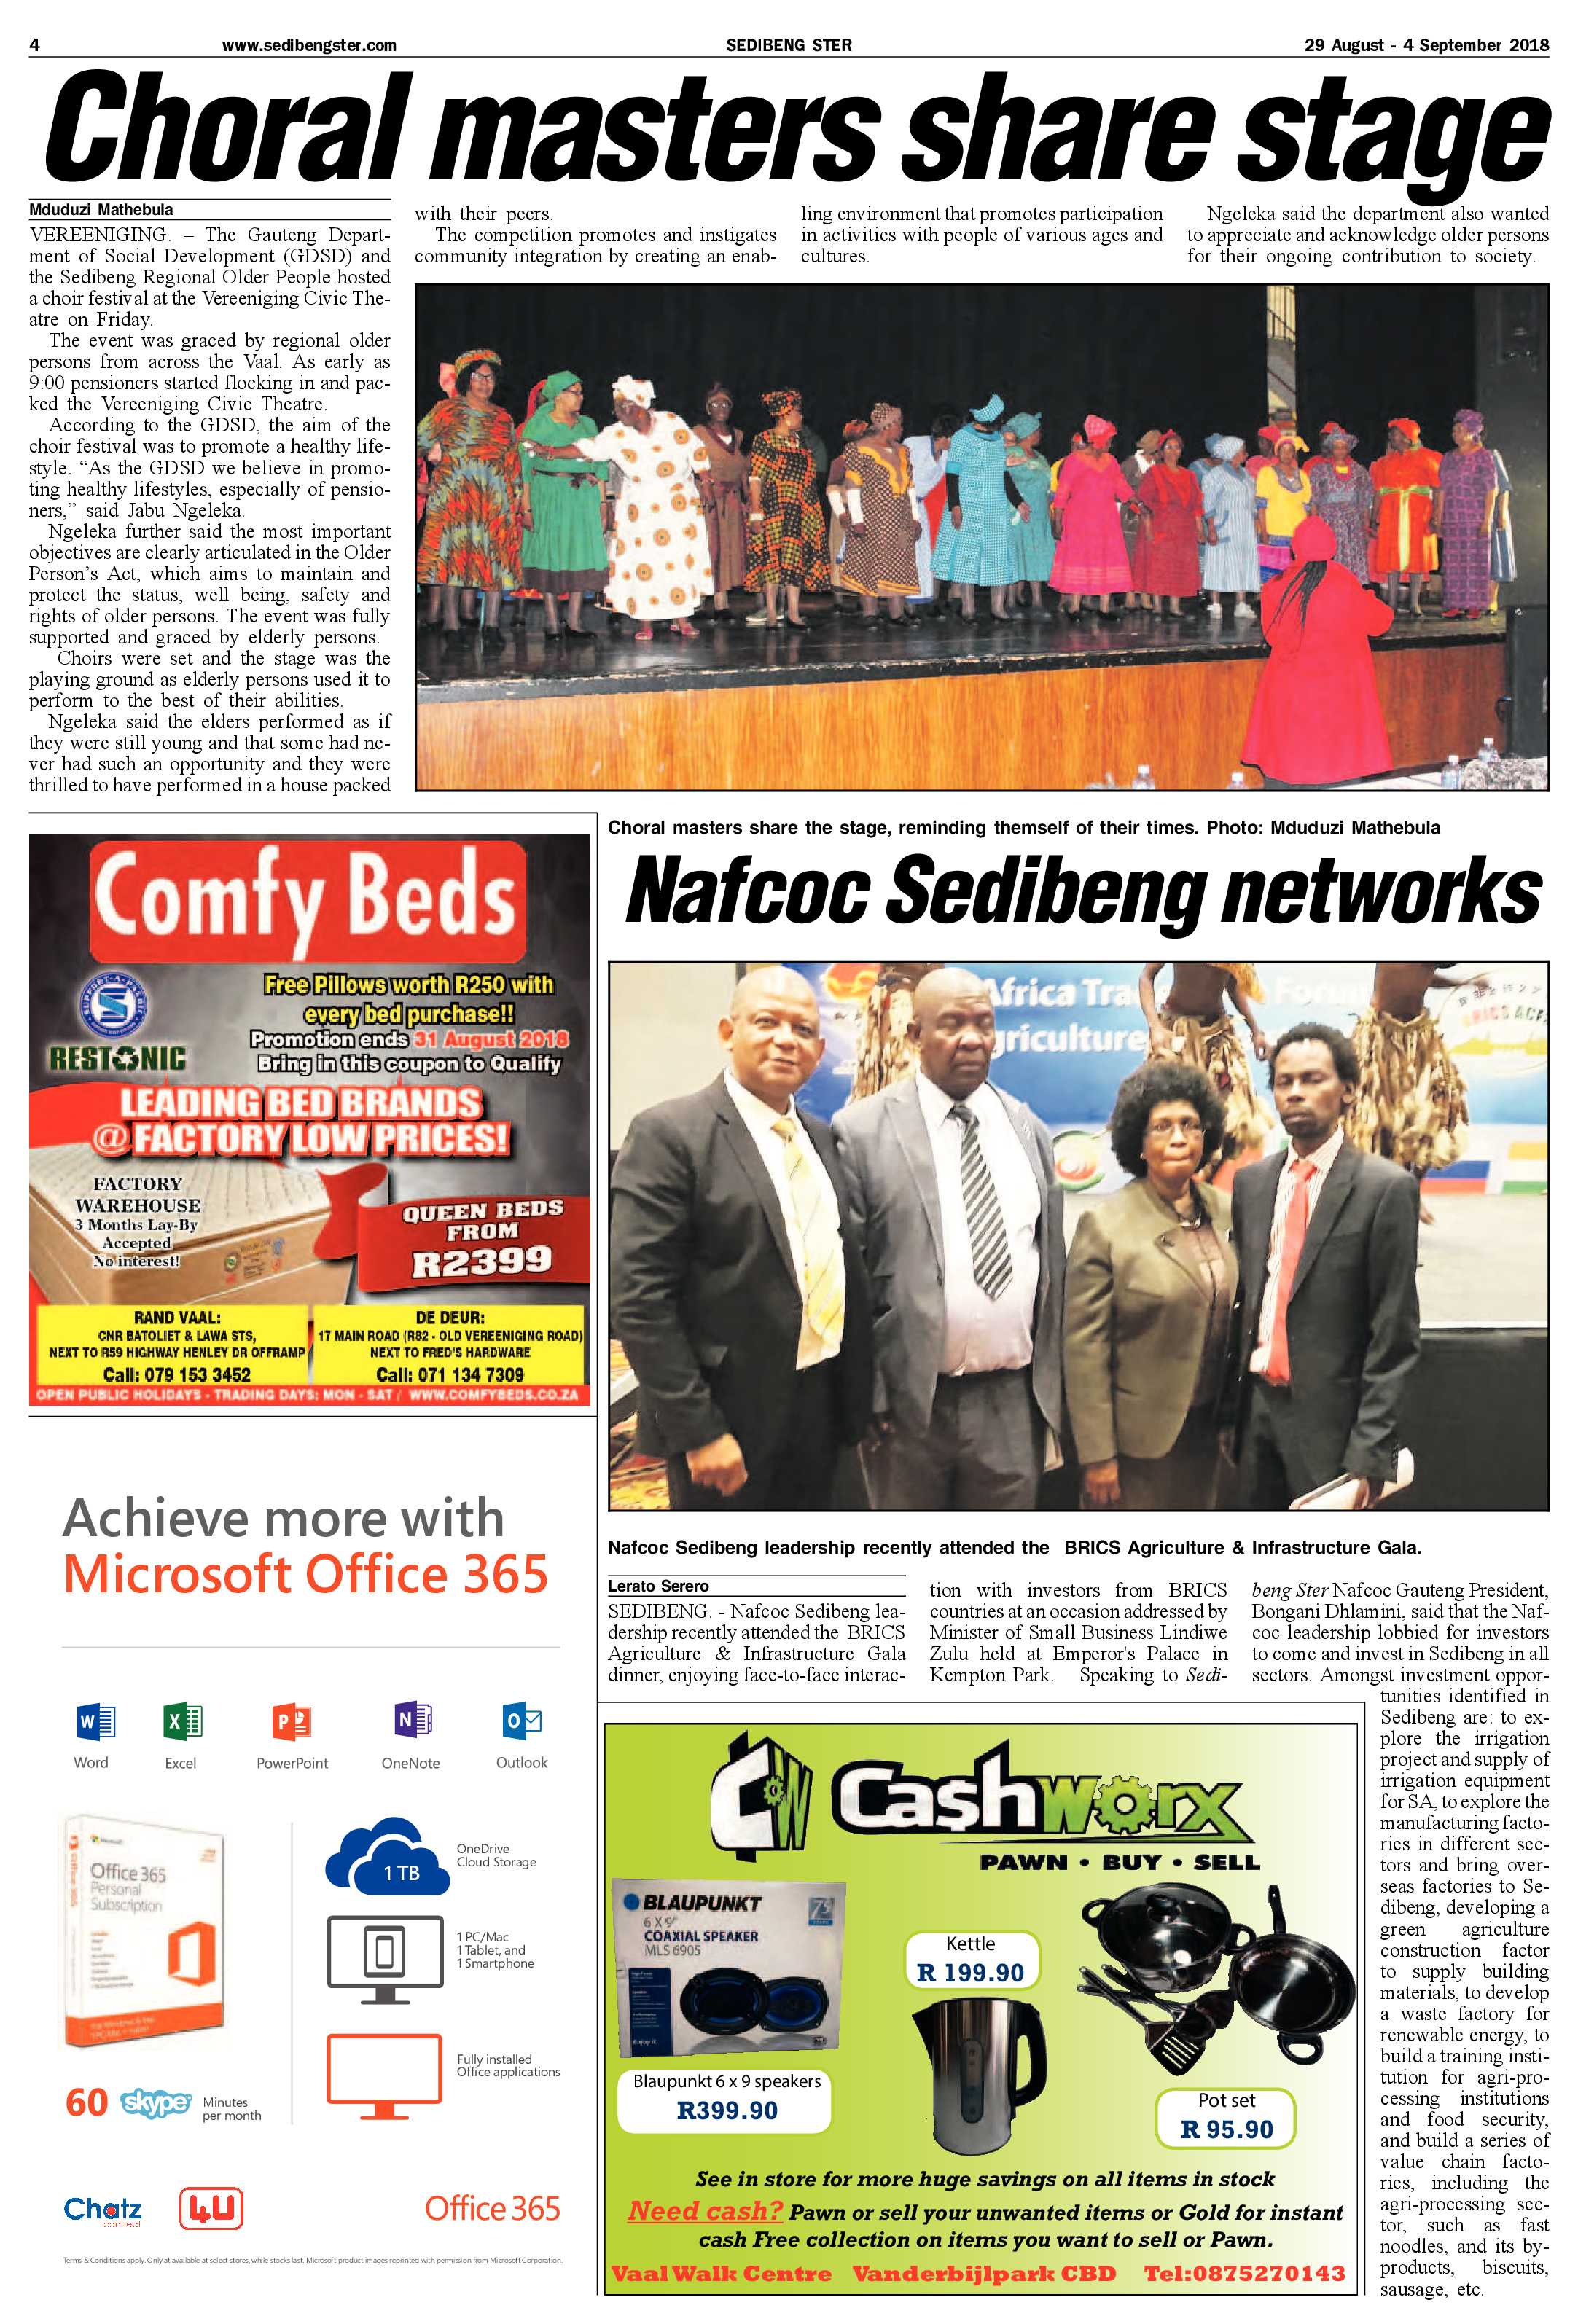 sedibeng-ster-29-august-4-september-2018-epapers-page-4